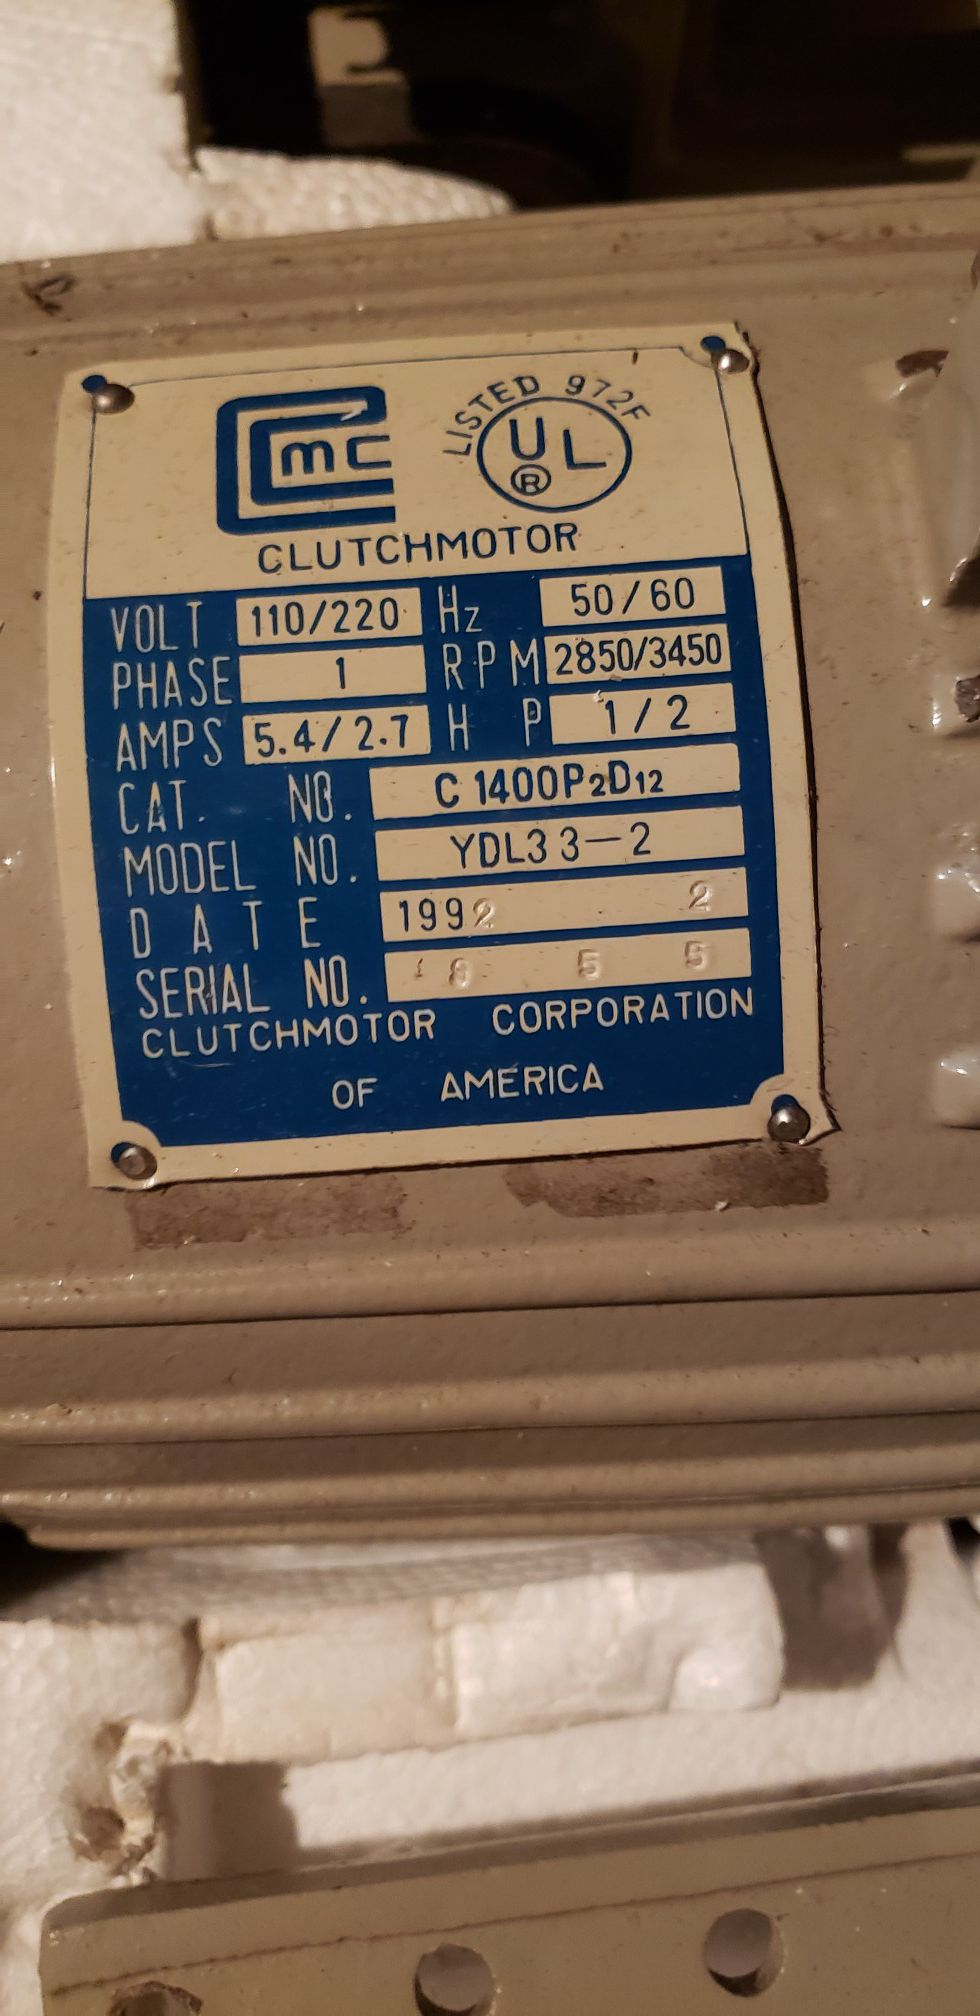 Pfaff commercial sewing machine and Clutch high RPM sewing machine motor